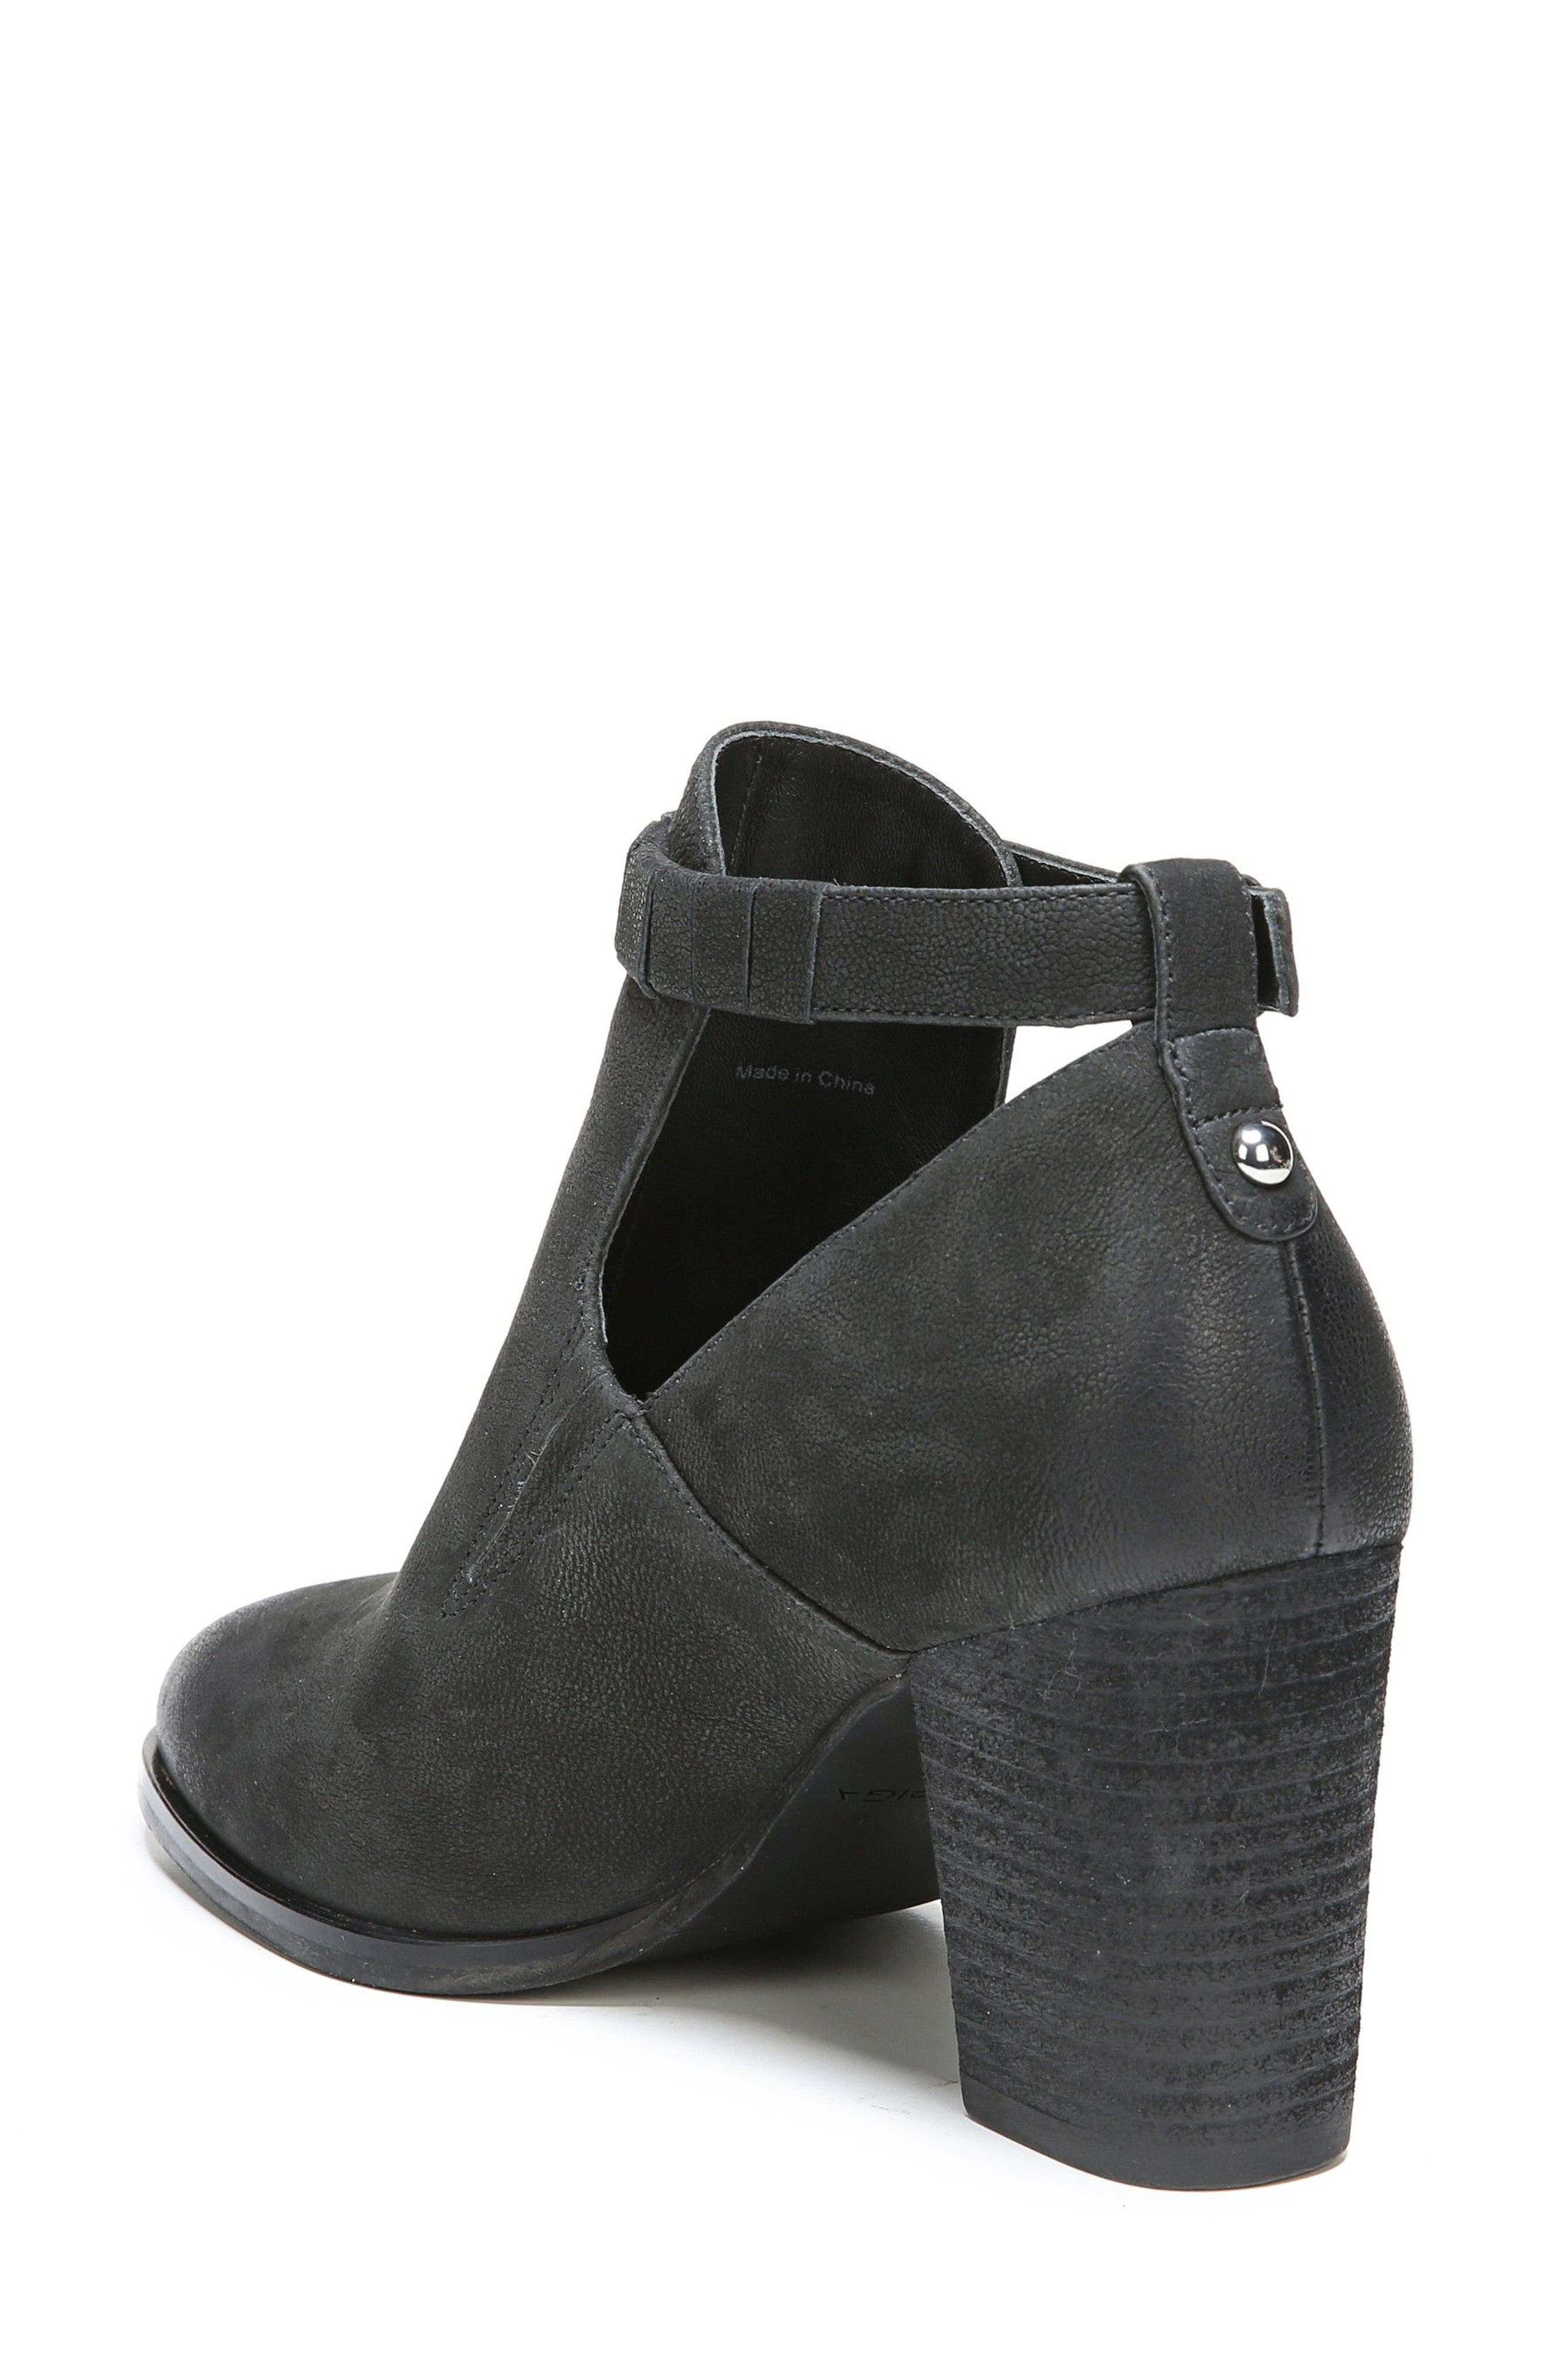 Samantha Block Heel Bootie,                             Alternate thumbnail 2, color,                             Black Nubuck